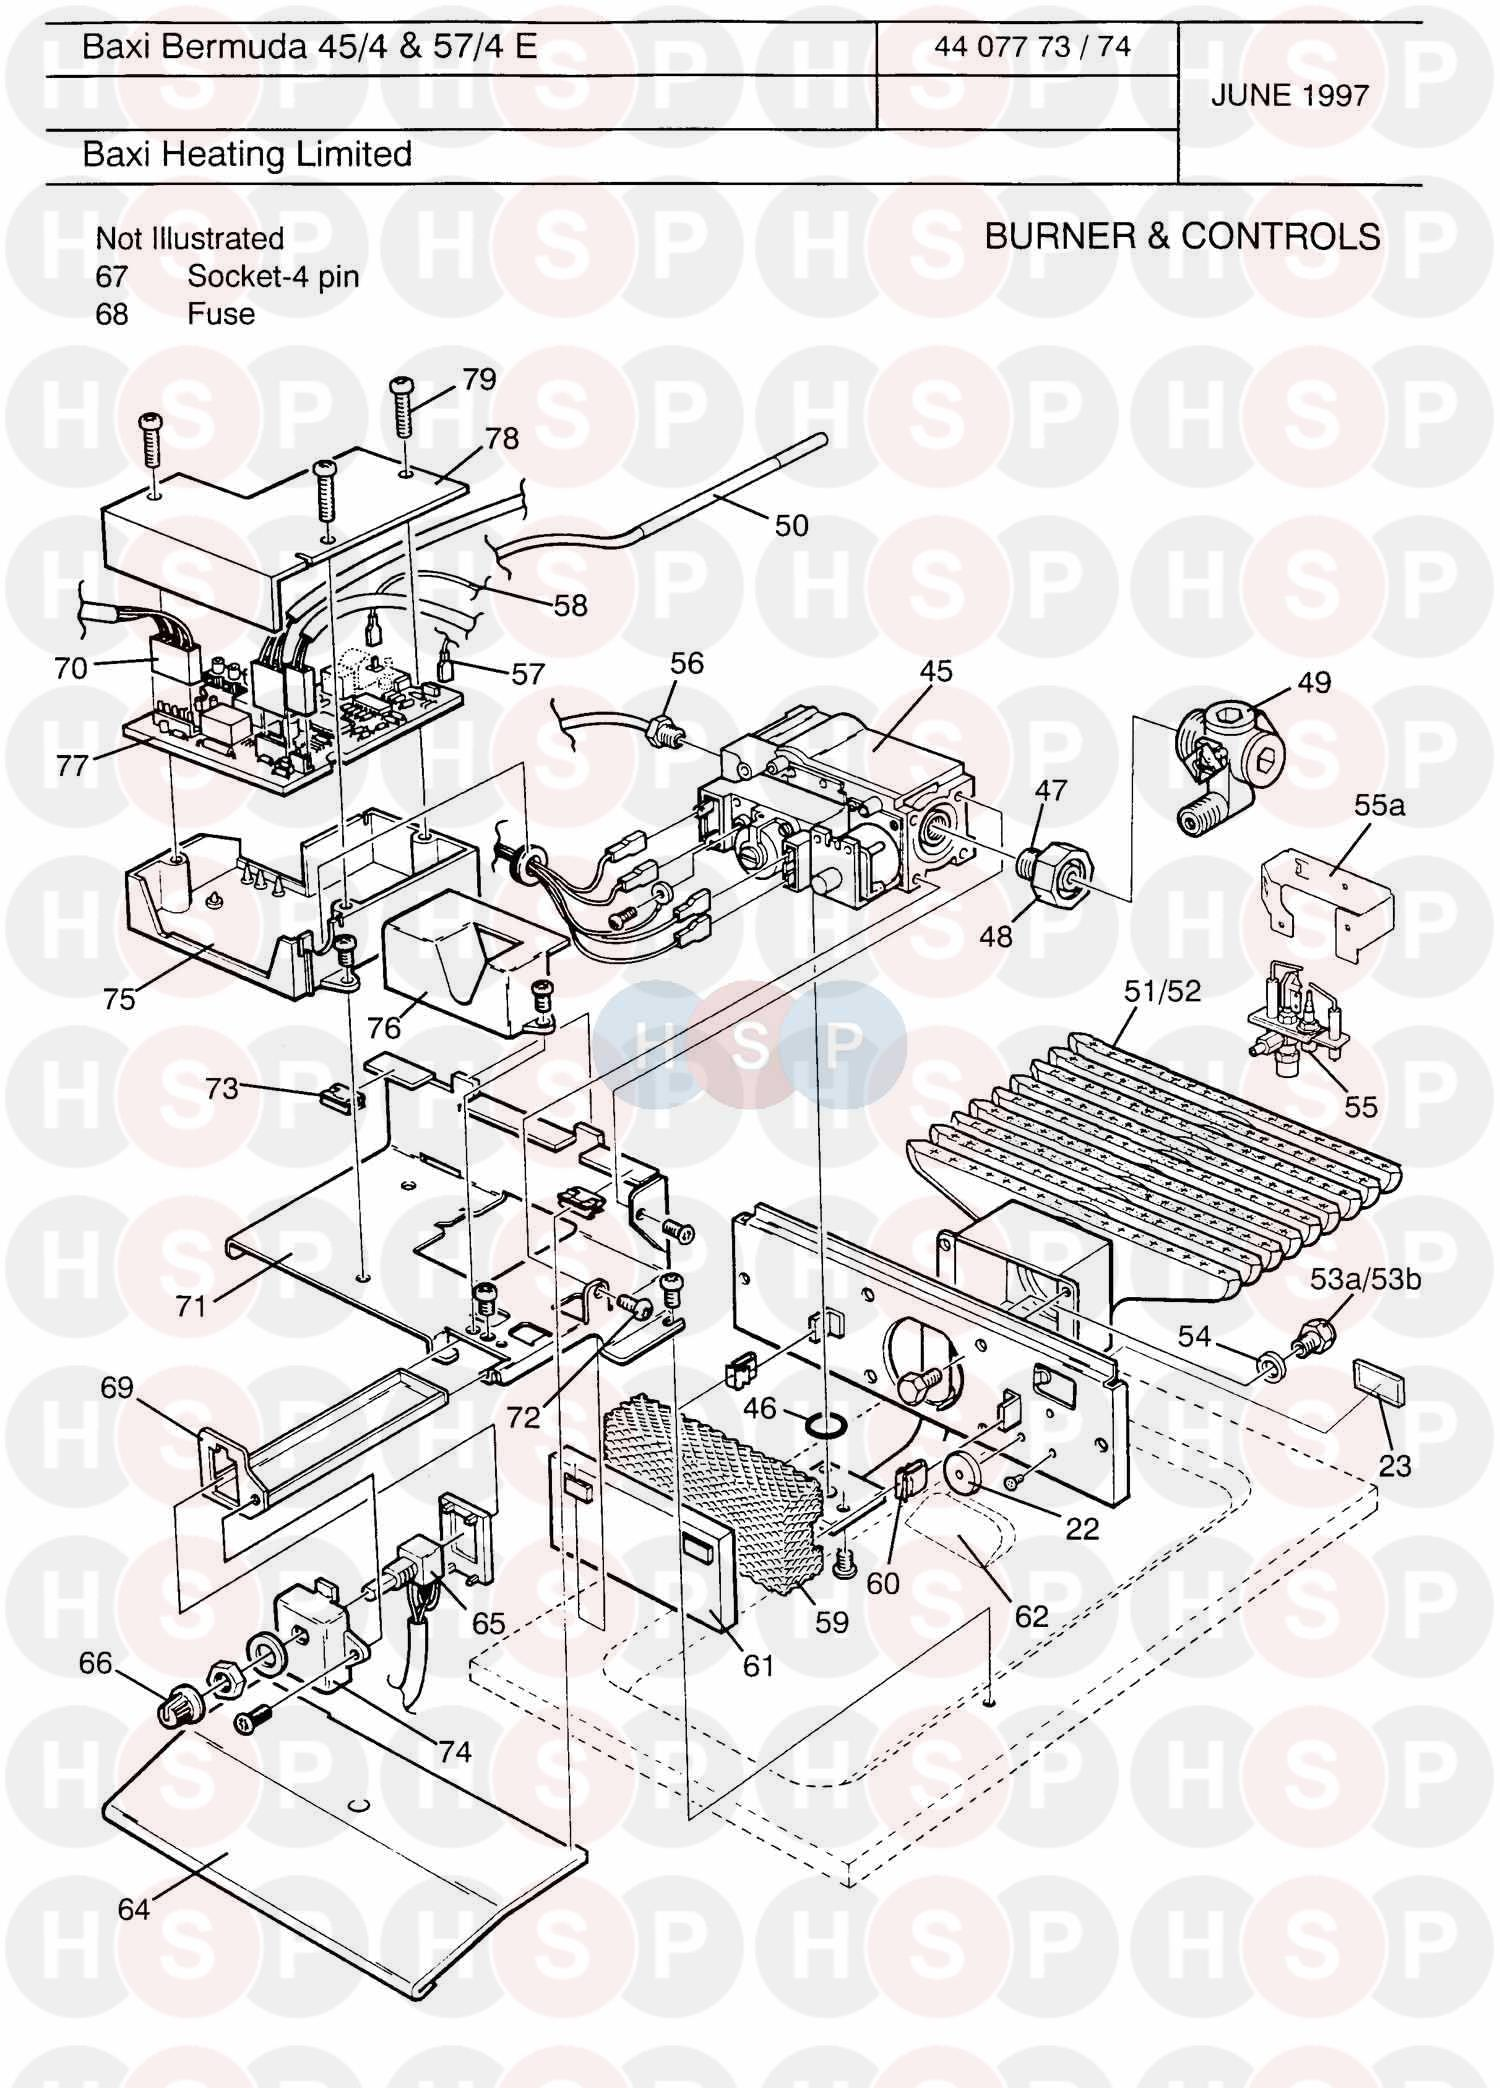 Baxi BERMUDA 45/4 ELECTRONIC (BURNER & CONTROLS) Diagram